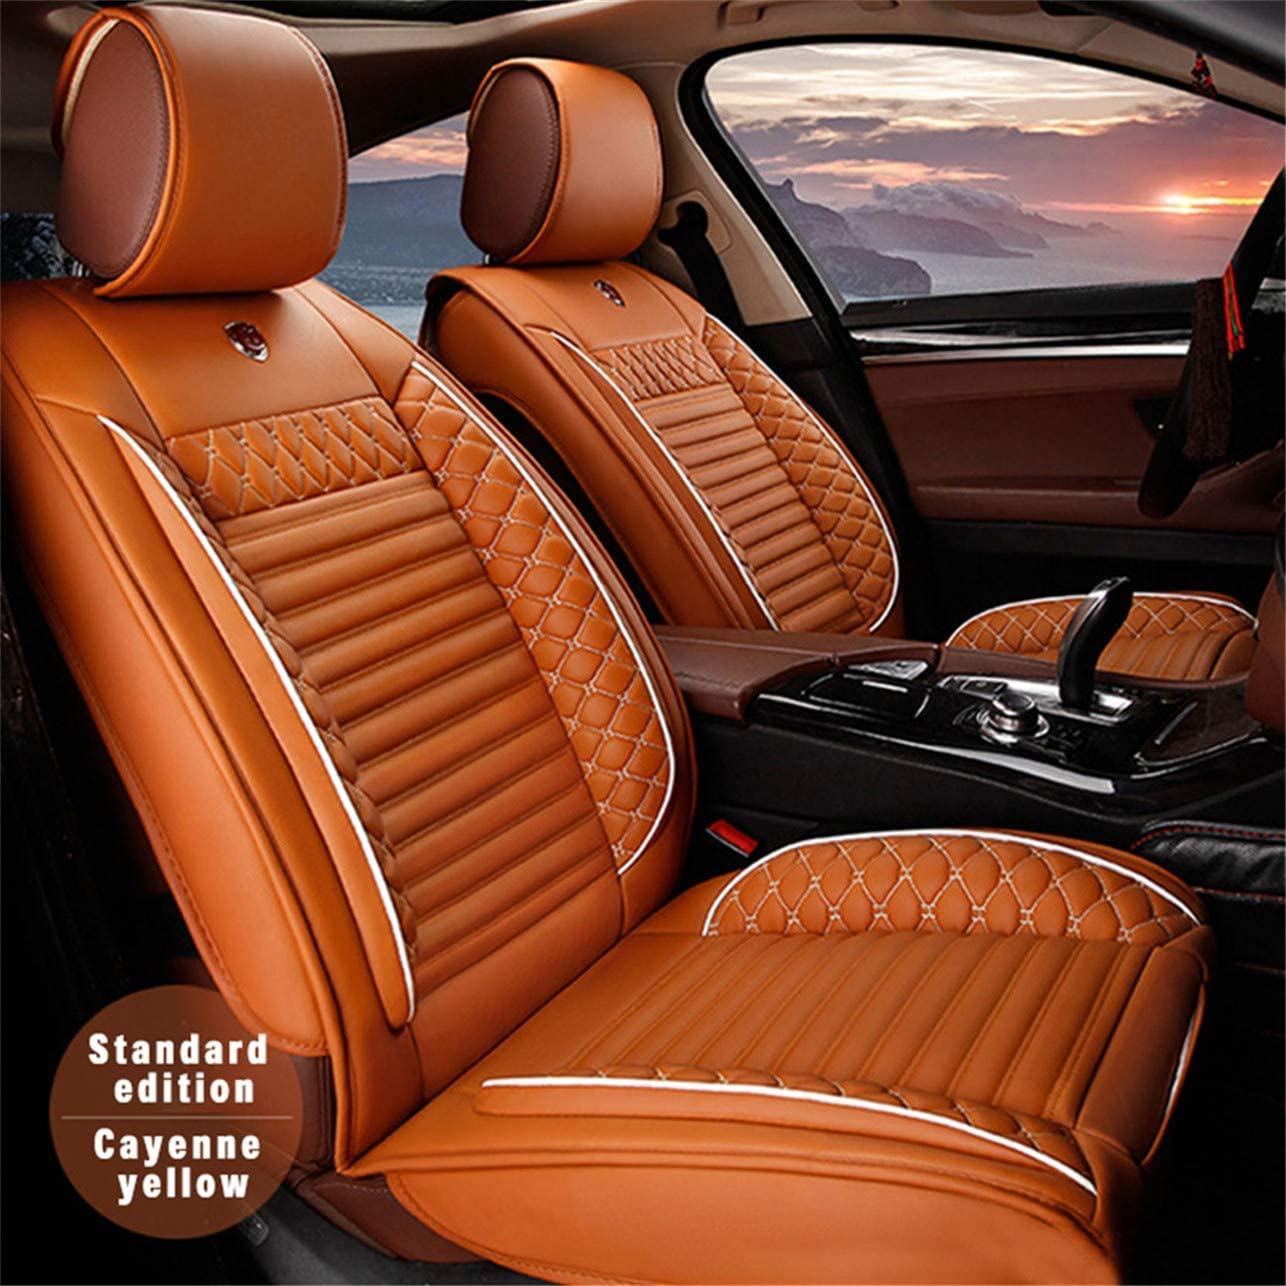 Amazon Com All Weather Custom Fit Seat Covers For Kia Sorento Sedona 5 Seat Full Protection Waterproof Car Seat Covers Ultra Comfort Cayenne Full Set Automotive